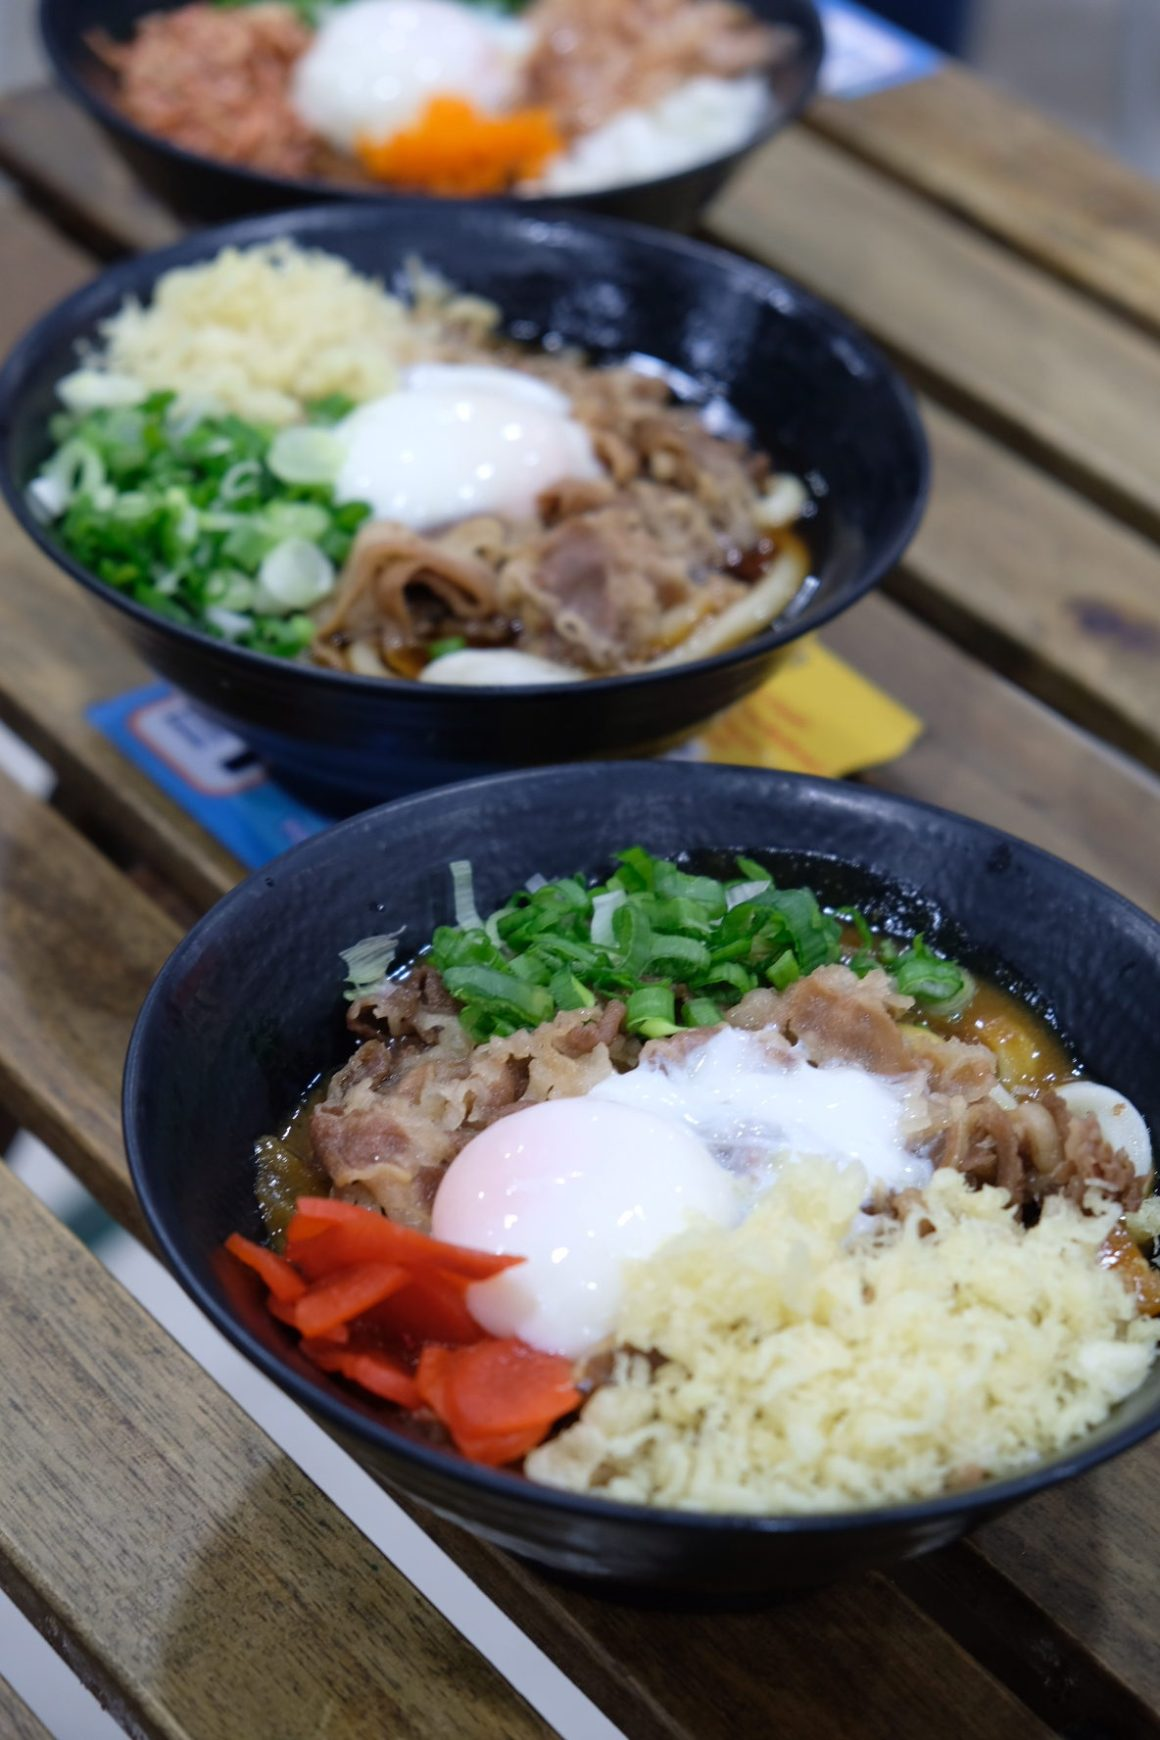 2019 Top 5 Udon At Tamoya Udon Singapore - Curry Beef Onsen Udon